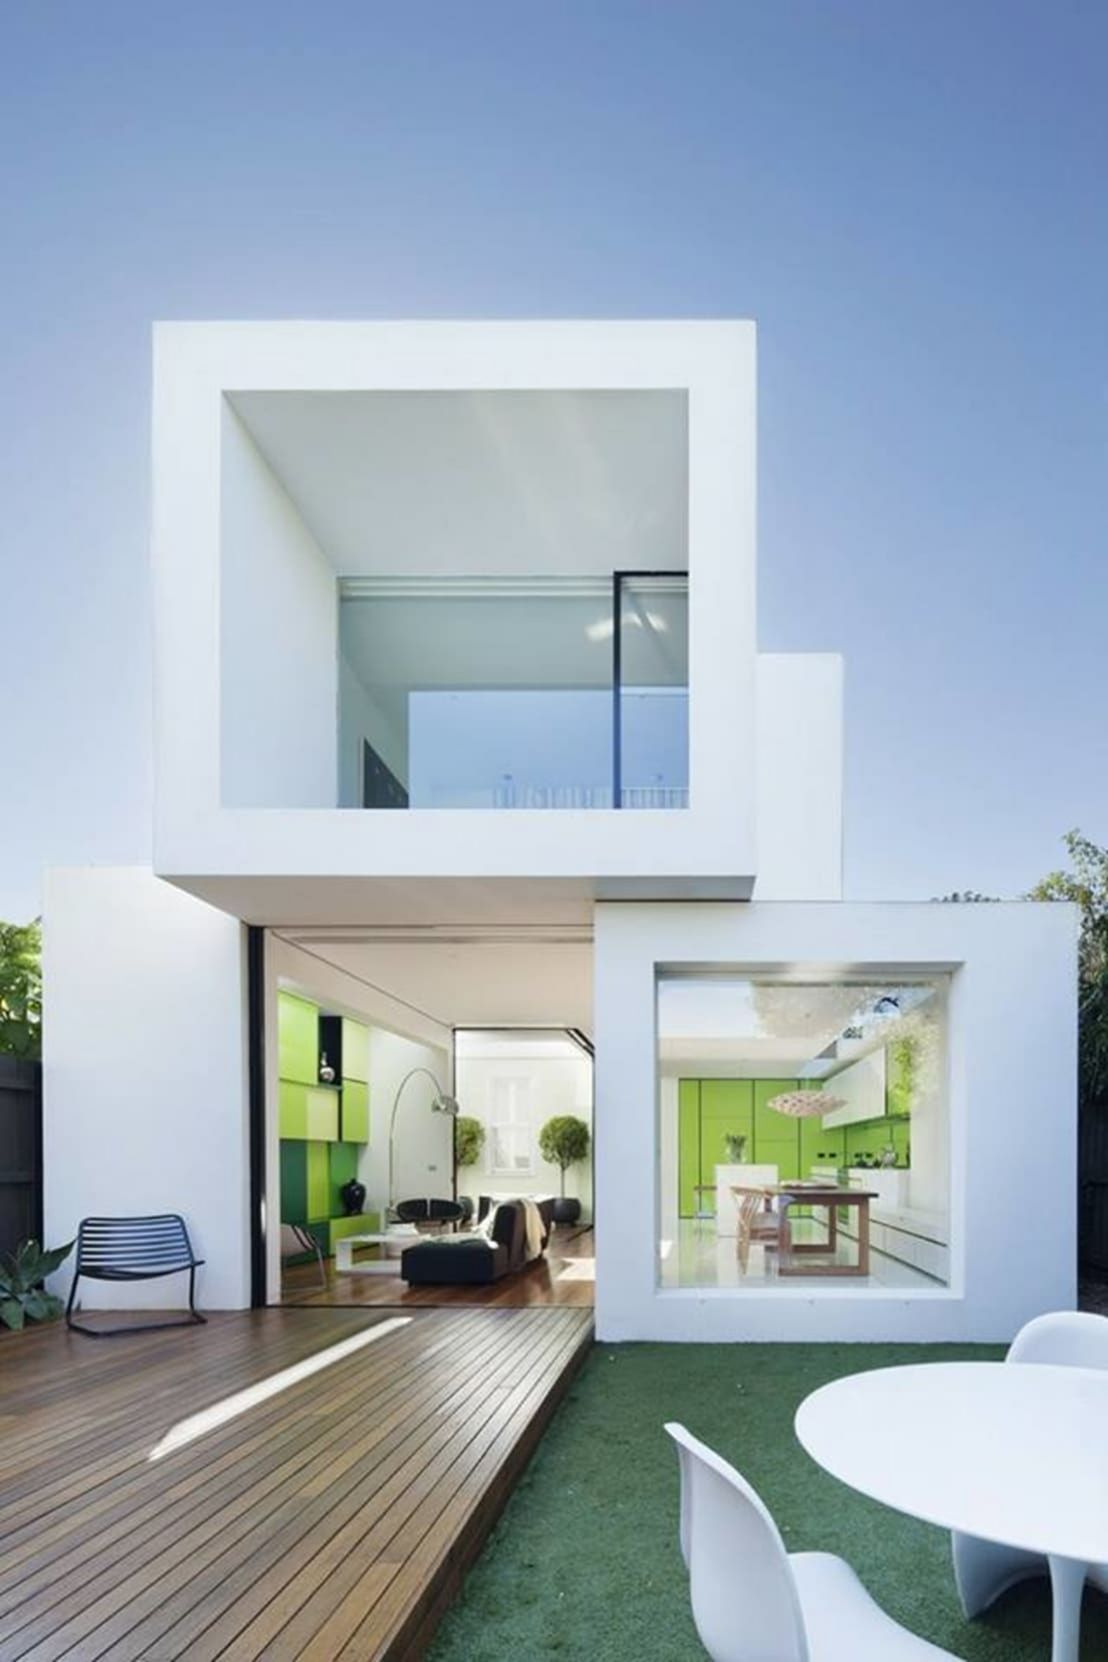 Modern Home Architecture Plans Lovely 7 Amazing Simple Home Architecture Design Ideas Liveindecor